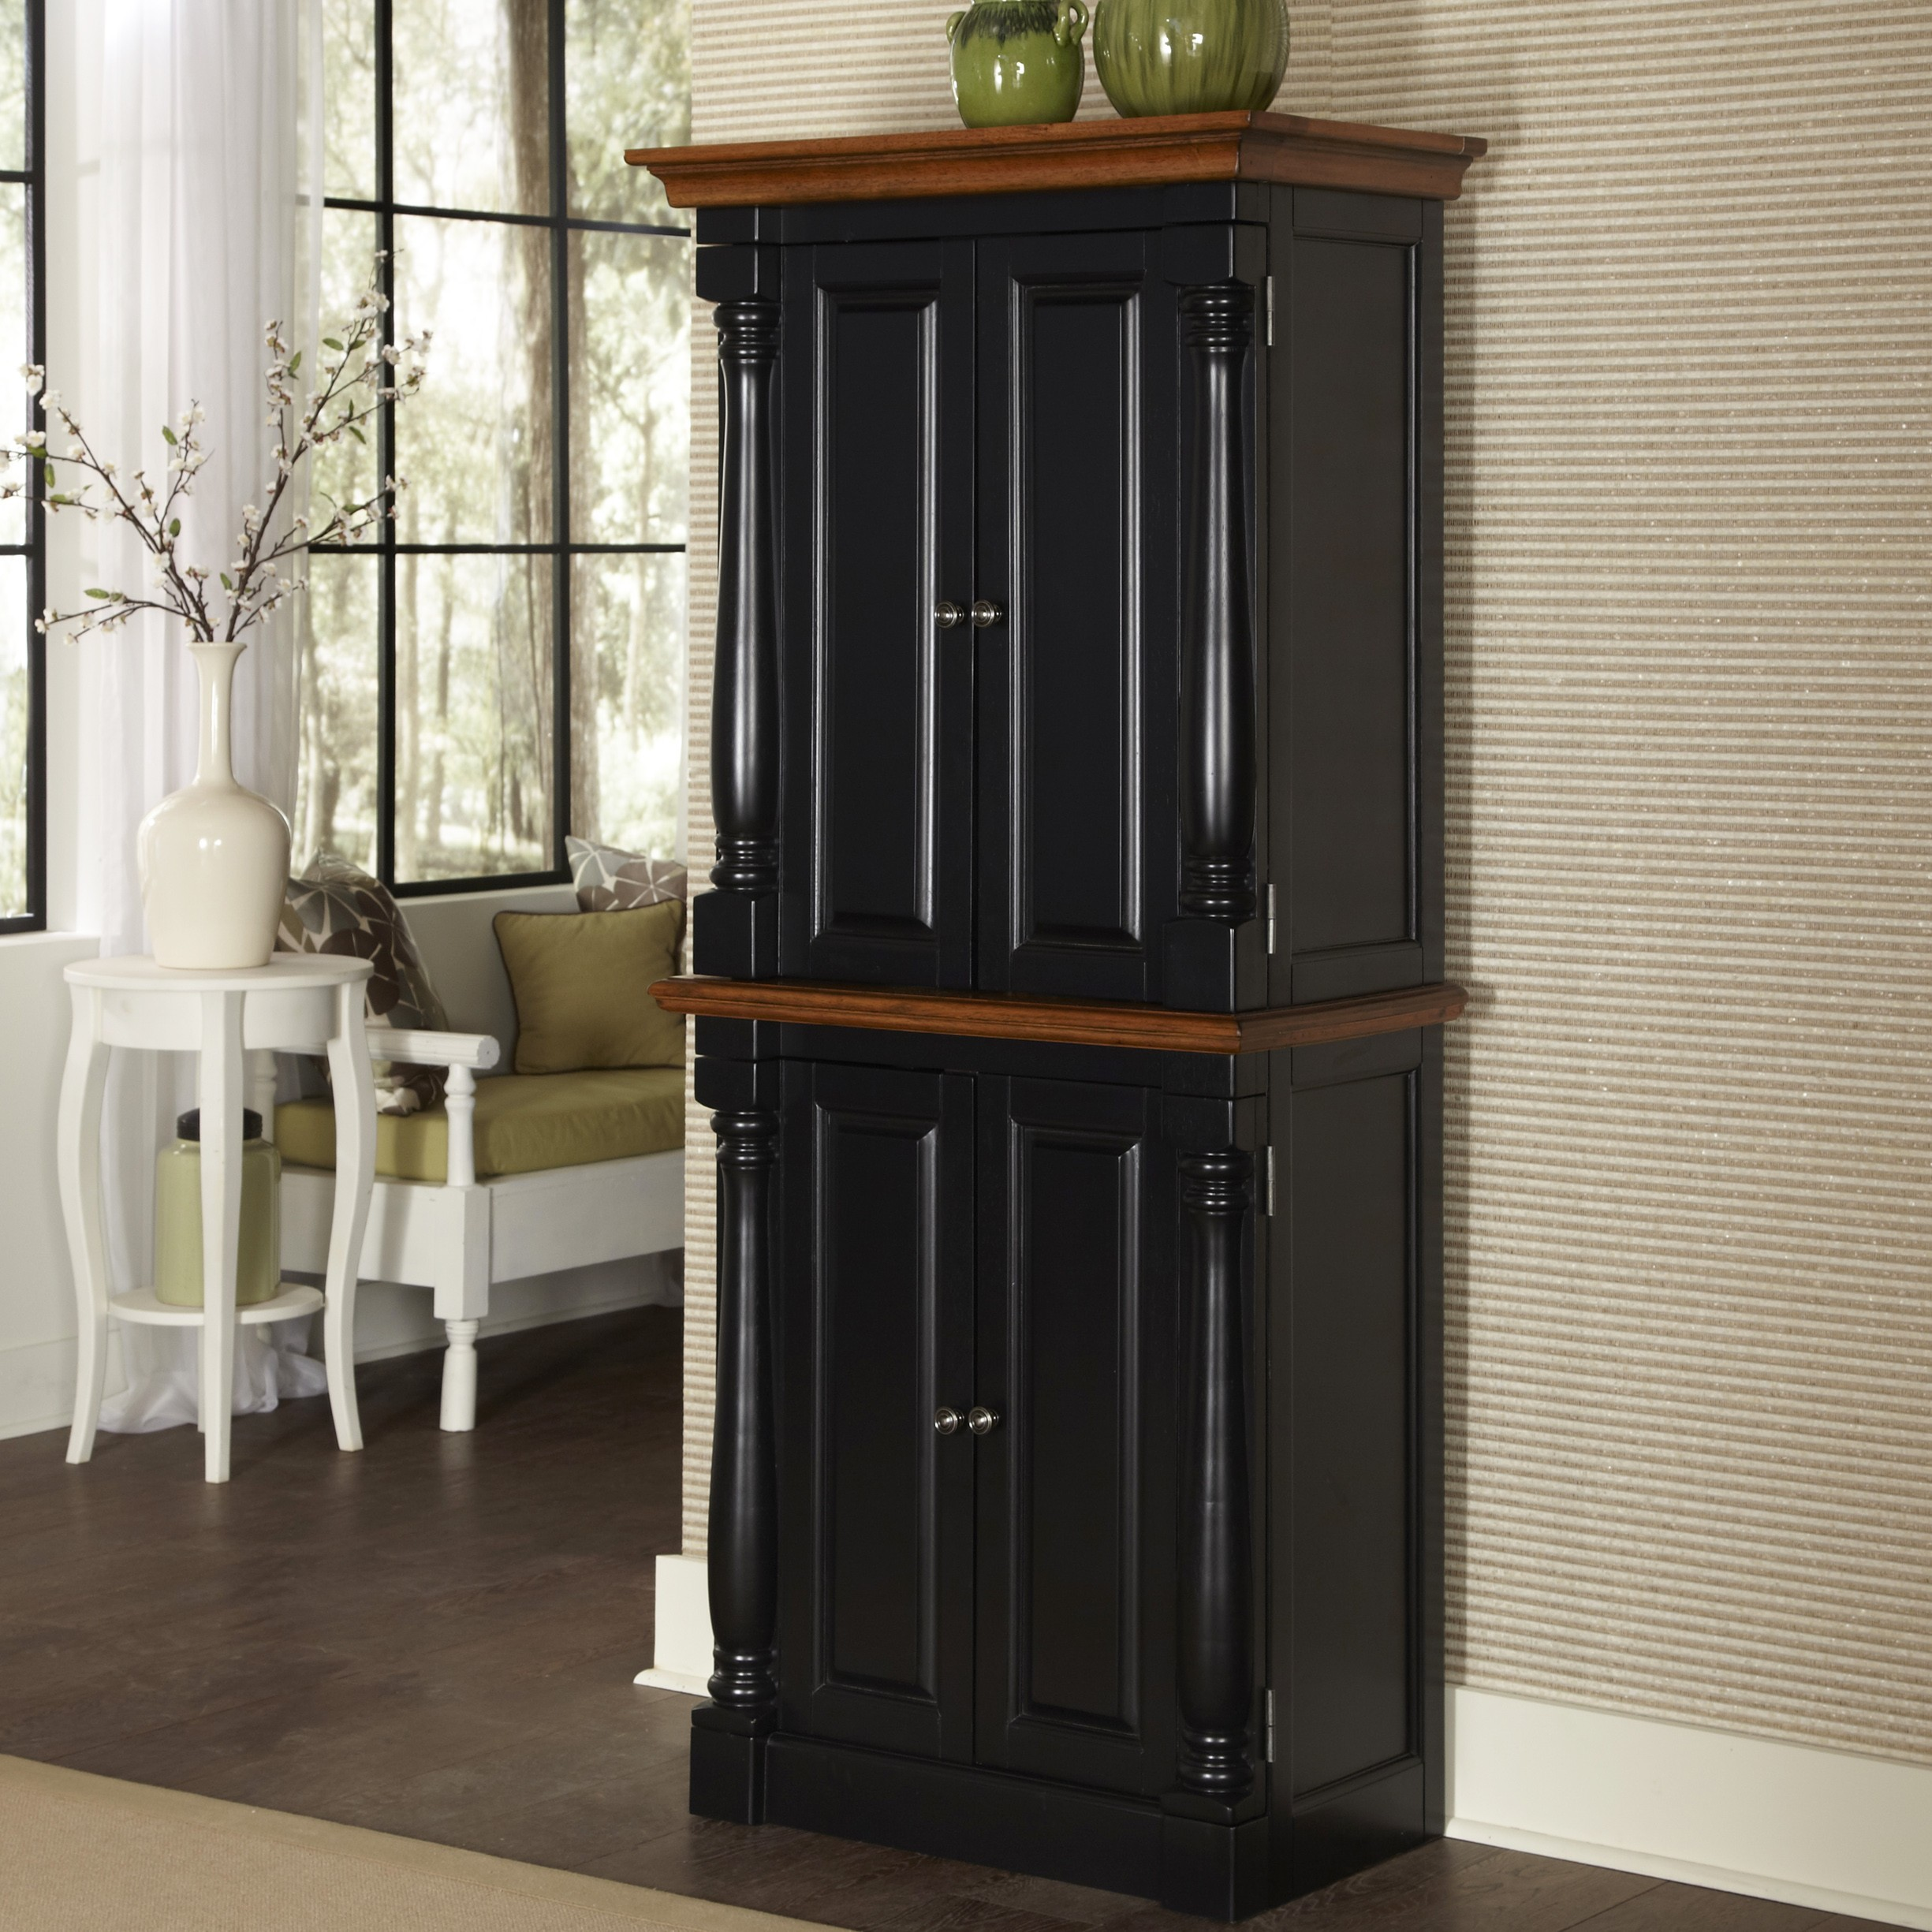 Stand Alone Kitchen Pantry Cabinet Stunning Utility Cabinets With Doors Roselawnlutheran